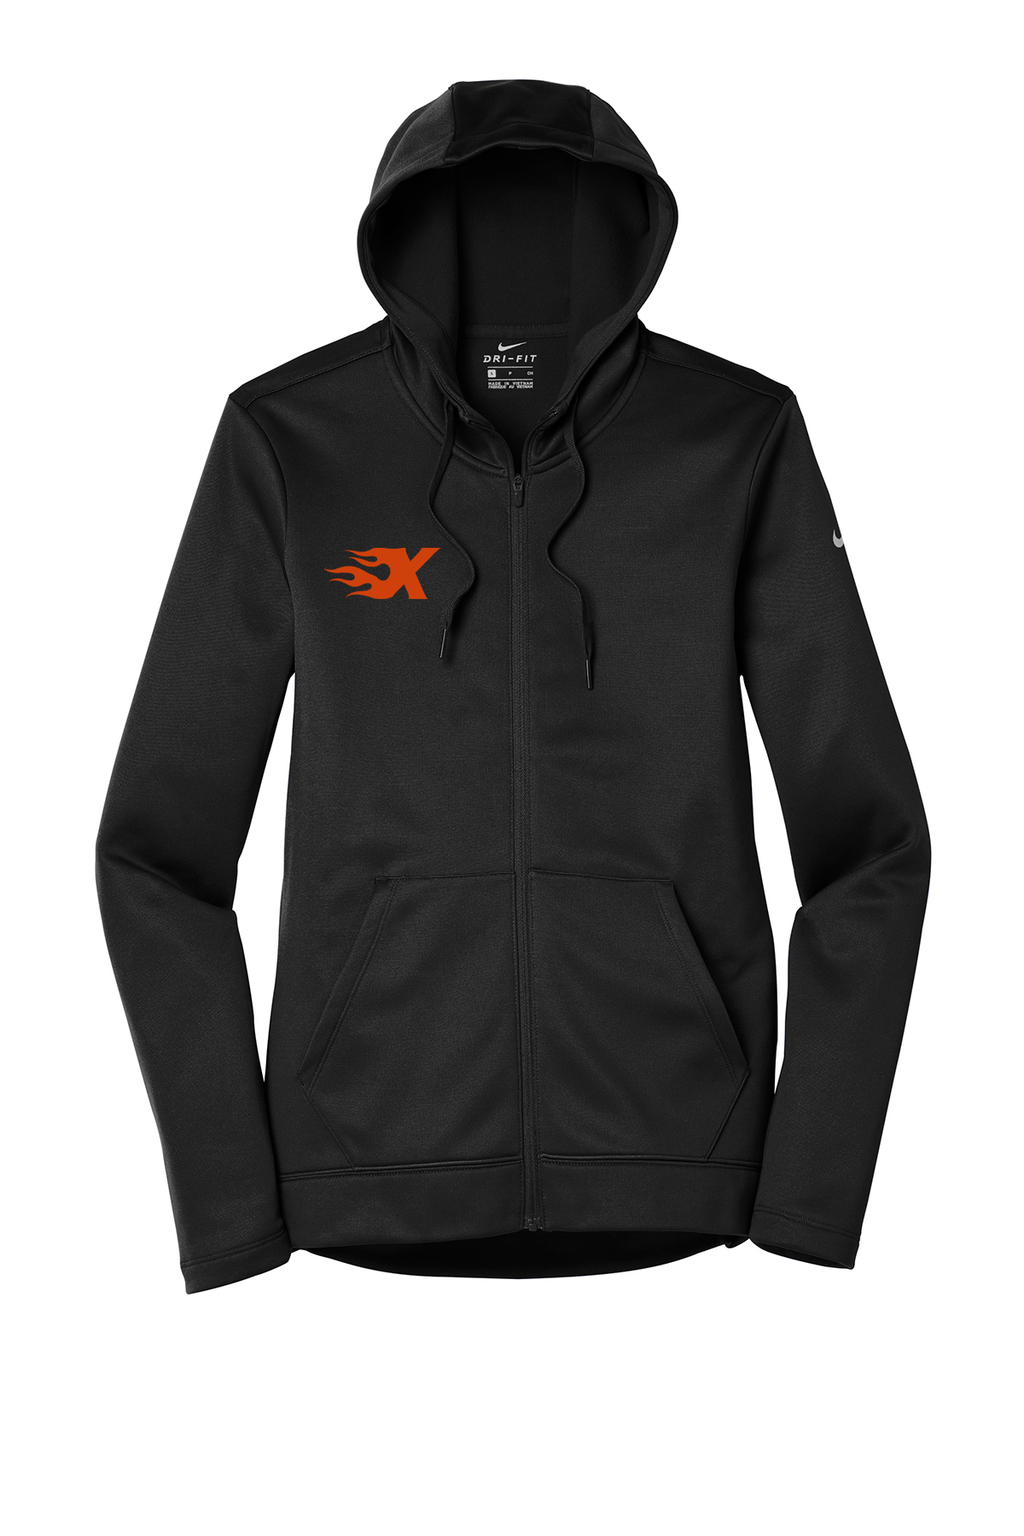 Xtreme Lacrosse Nike Ladies Black Therma-FIT Full Zip Hoodie